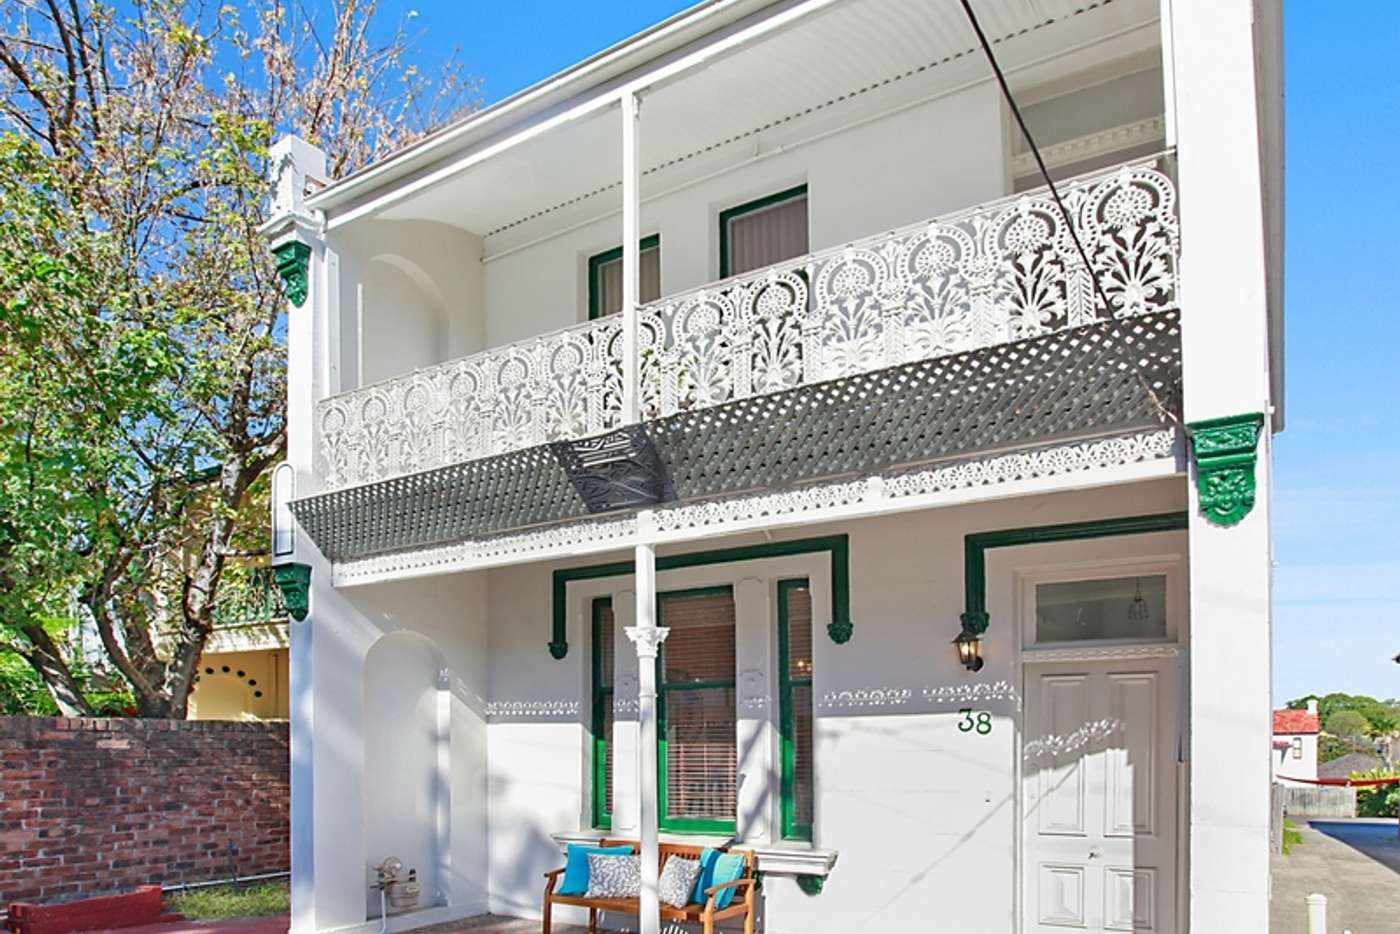 Main view of Homely house listing, 38 Norton Street, Ashfield NSW 2131